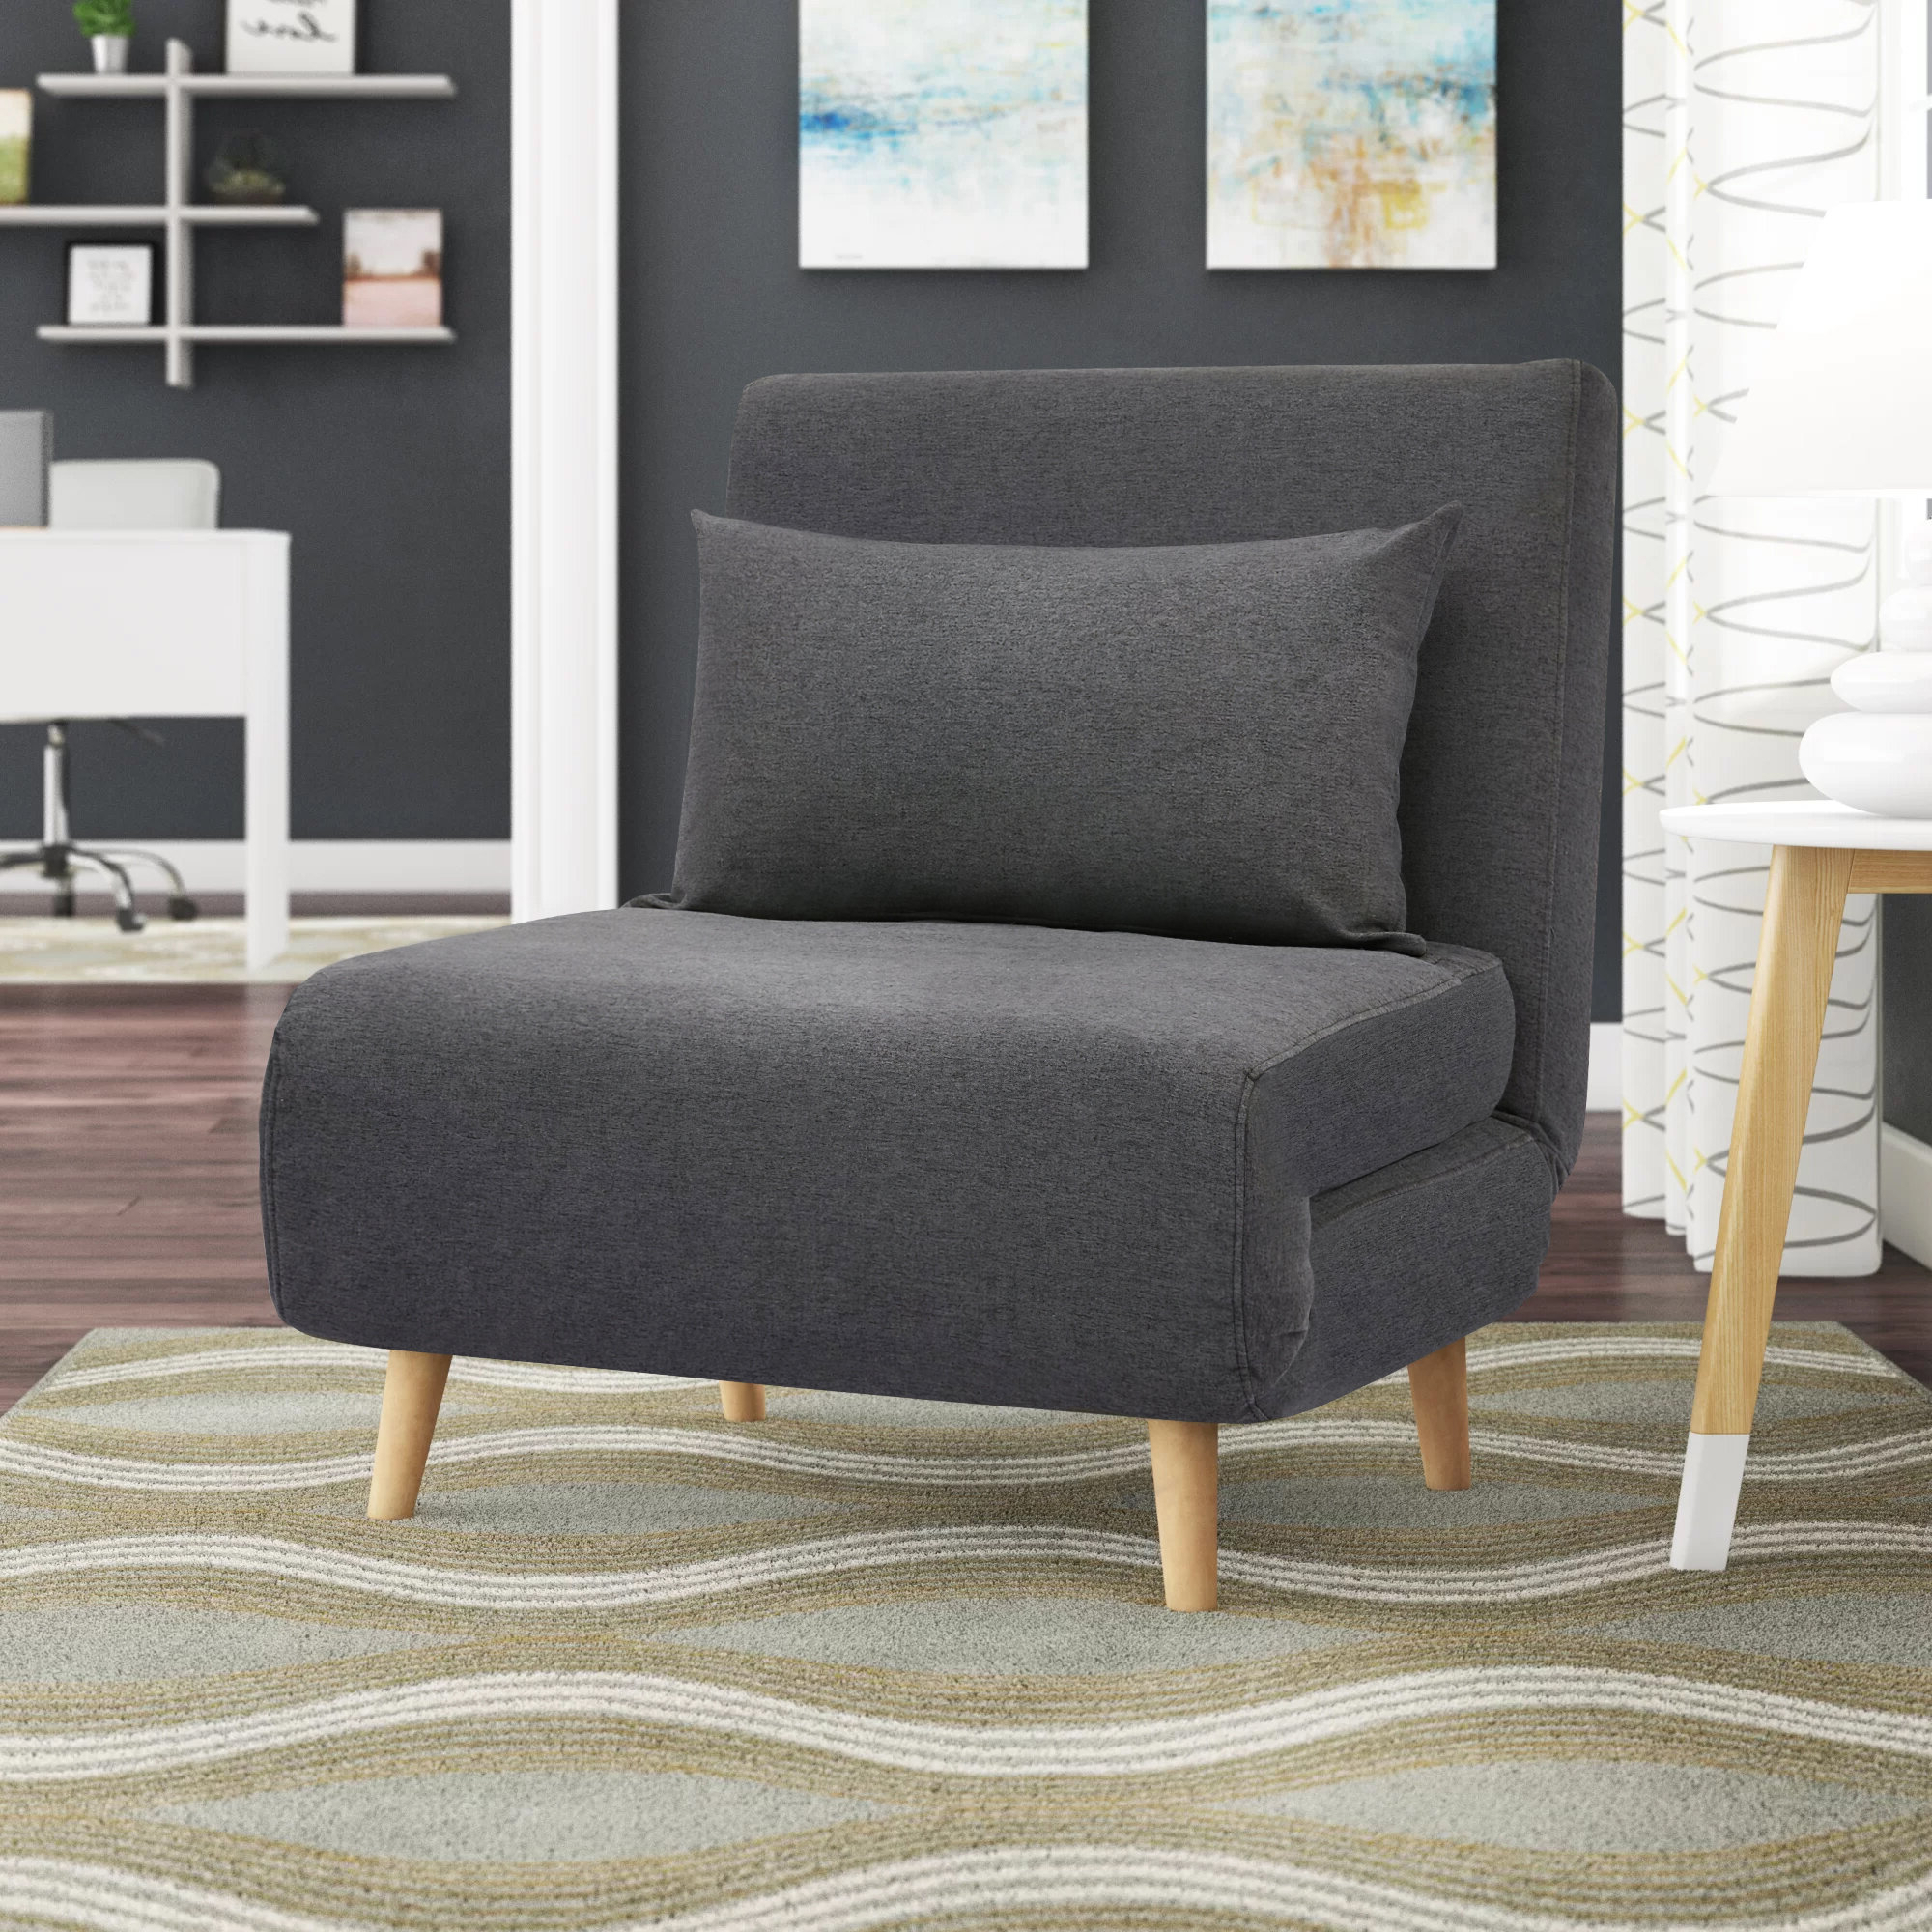 Wayfair With Regard To Longoria Convertible Chairs (View 7 of 20)